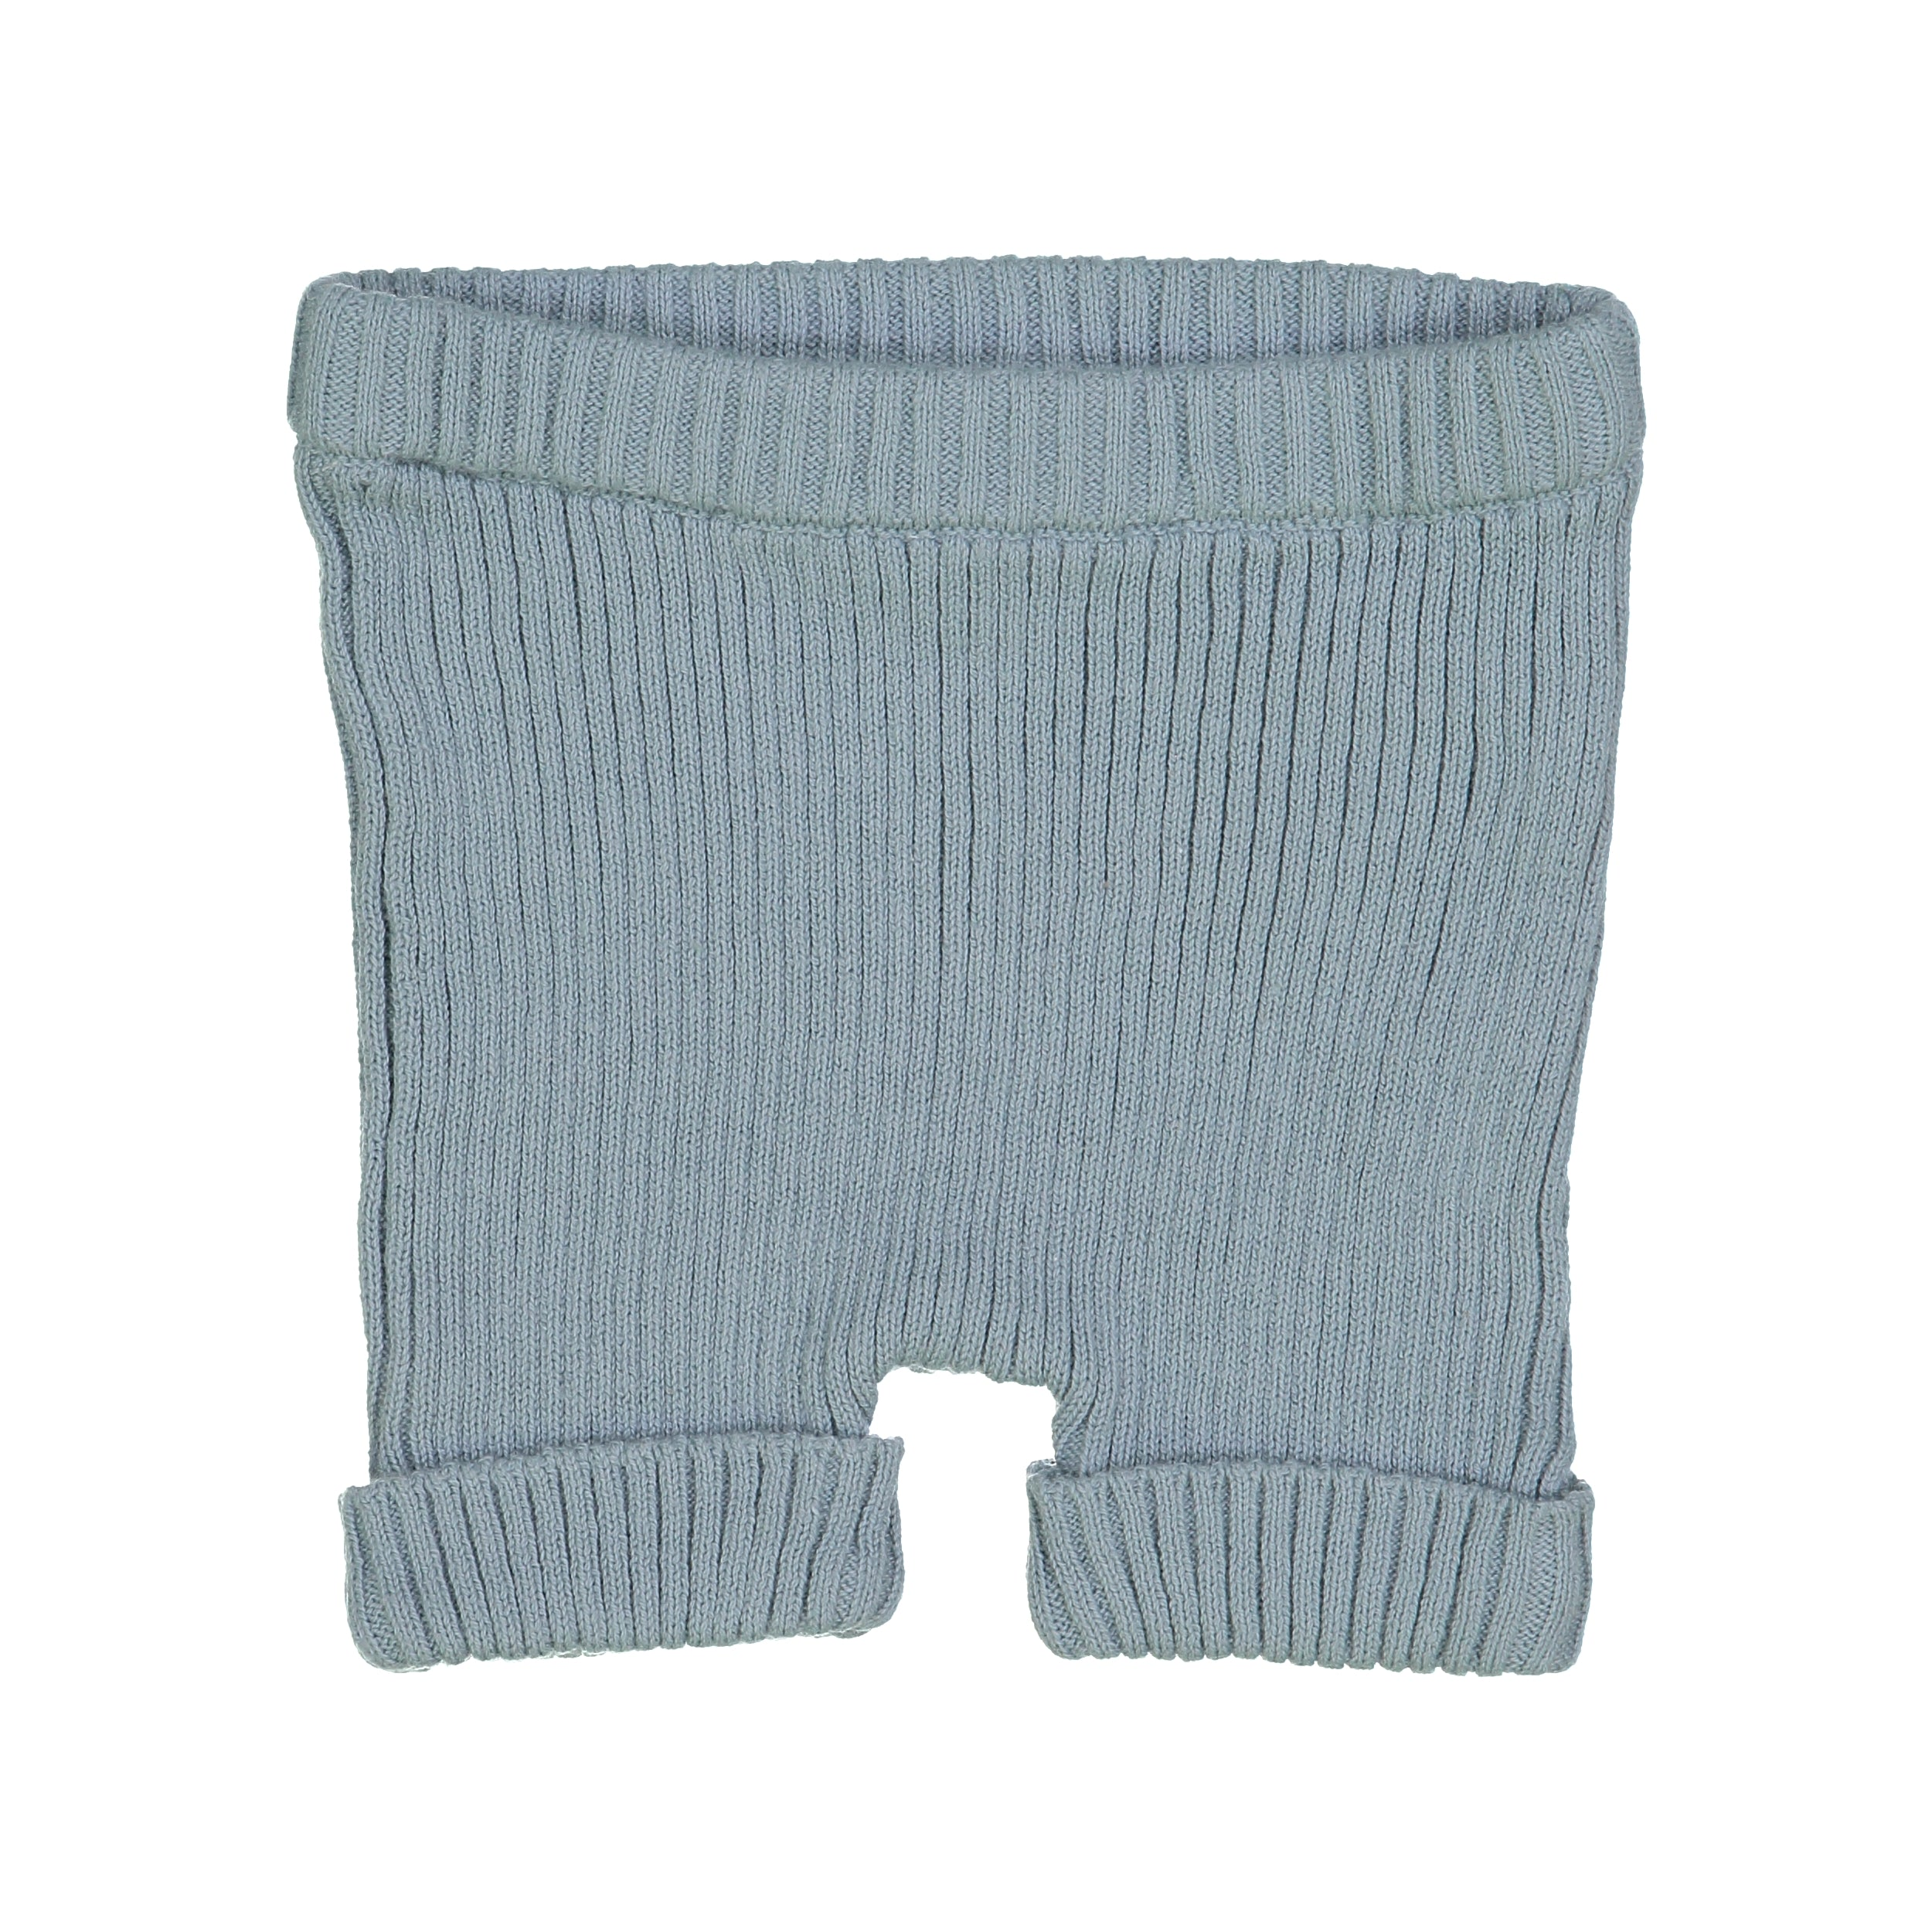 Analogie by Lil Leggs Aqua Ribbed Knit Shorts